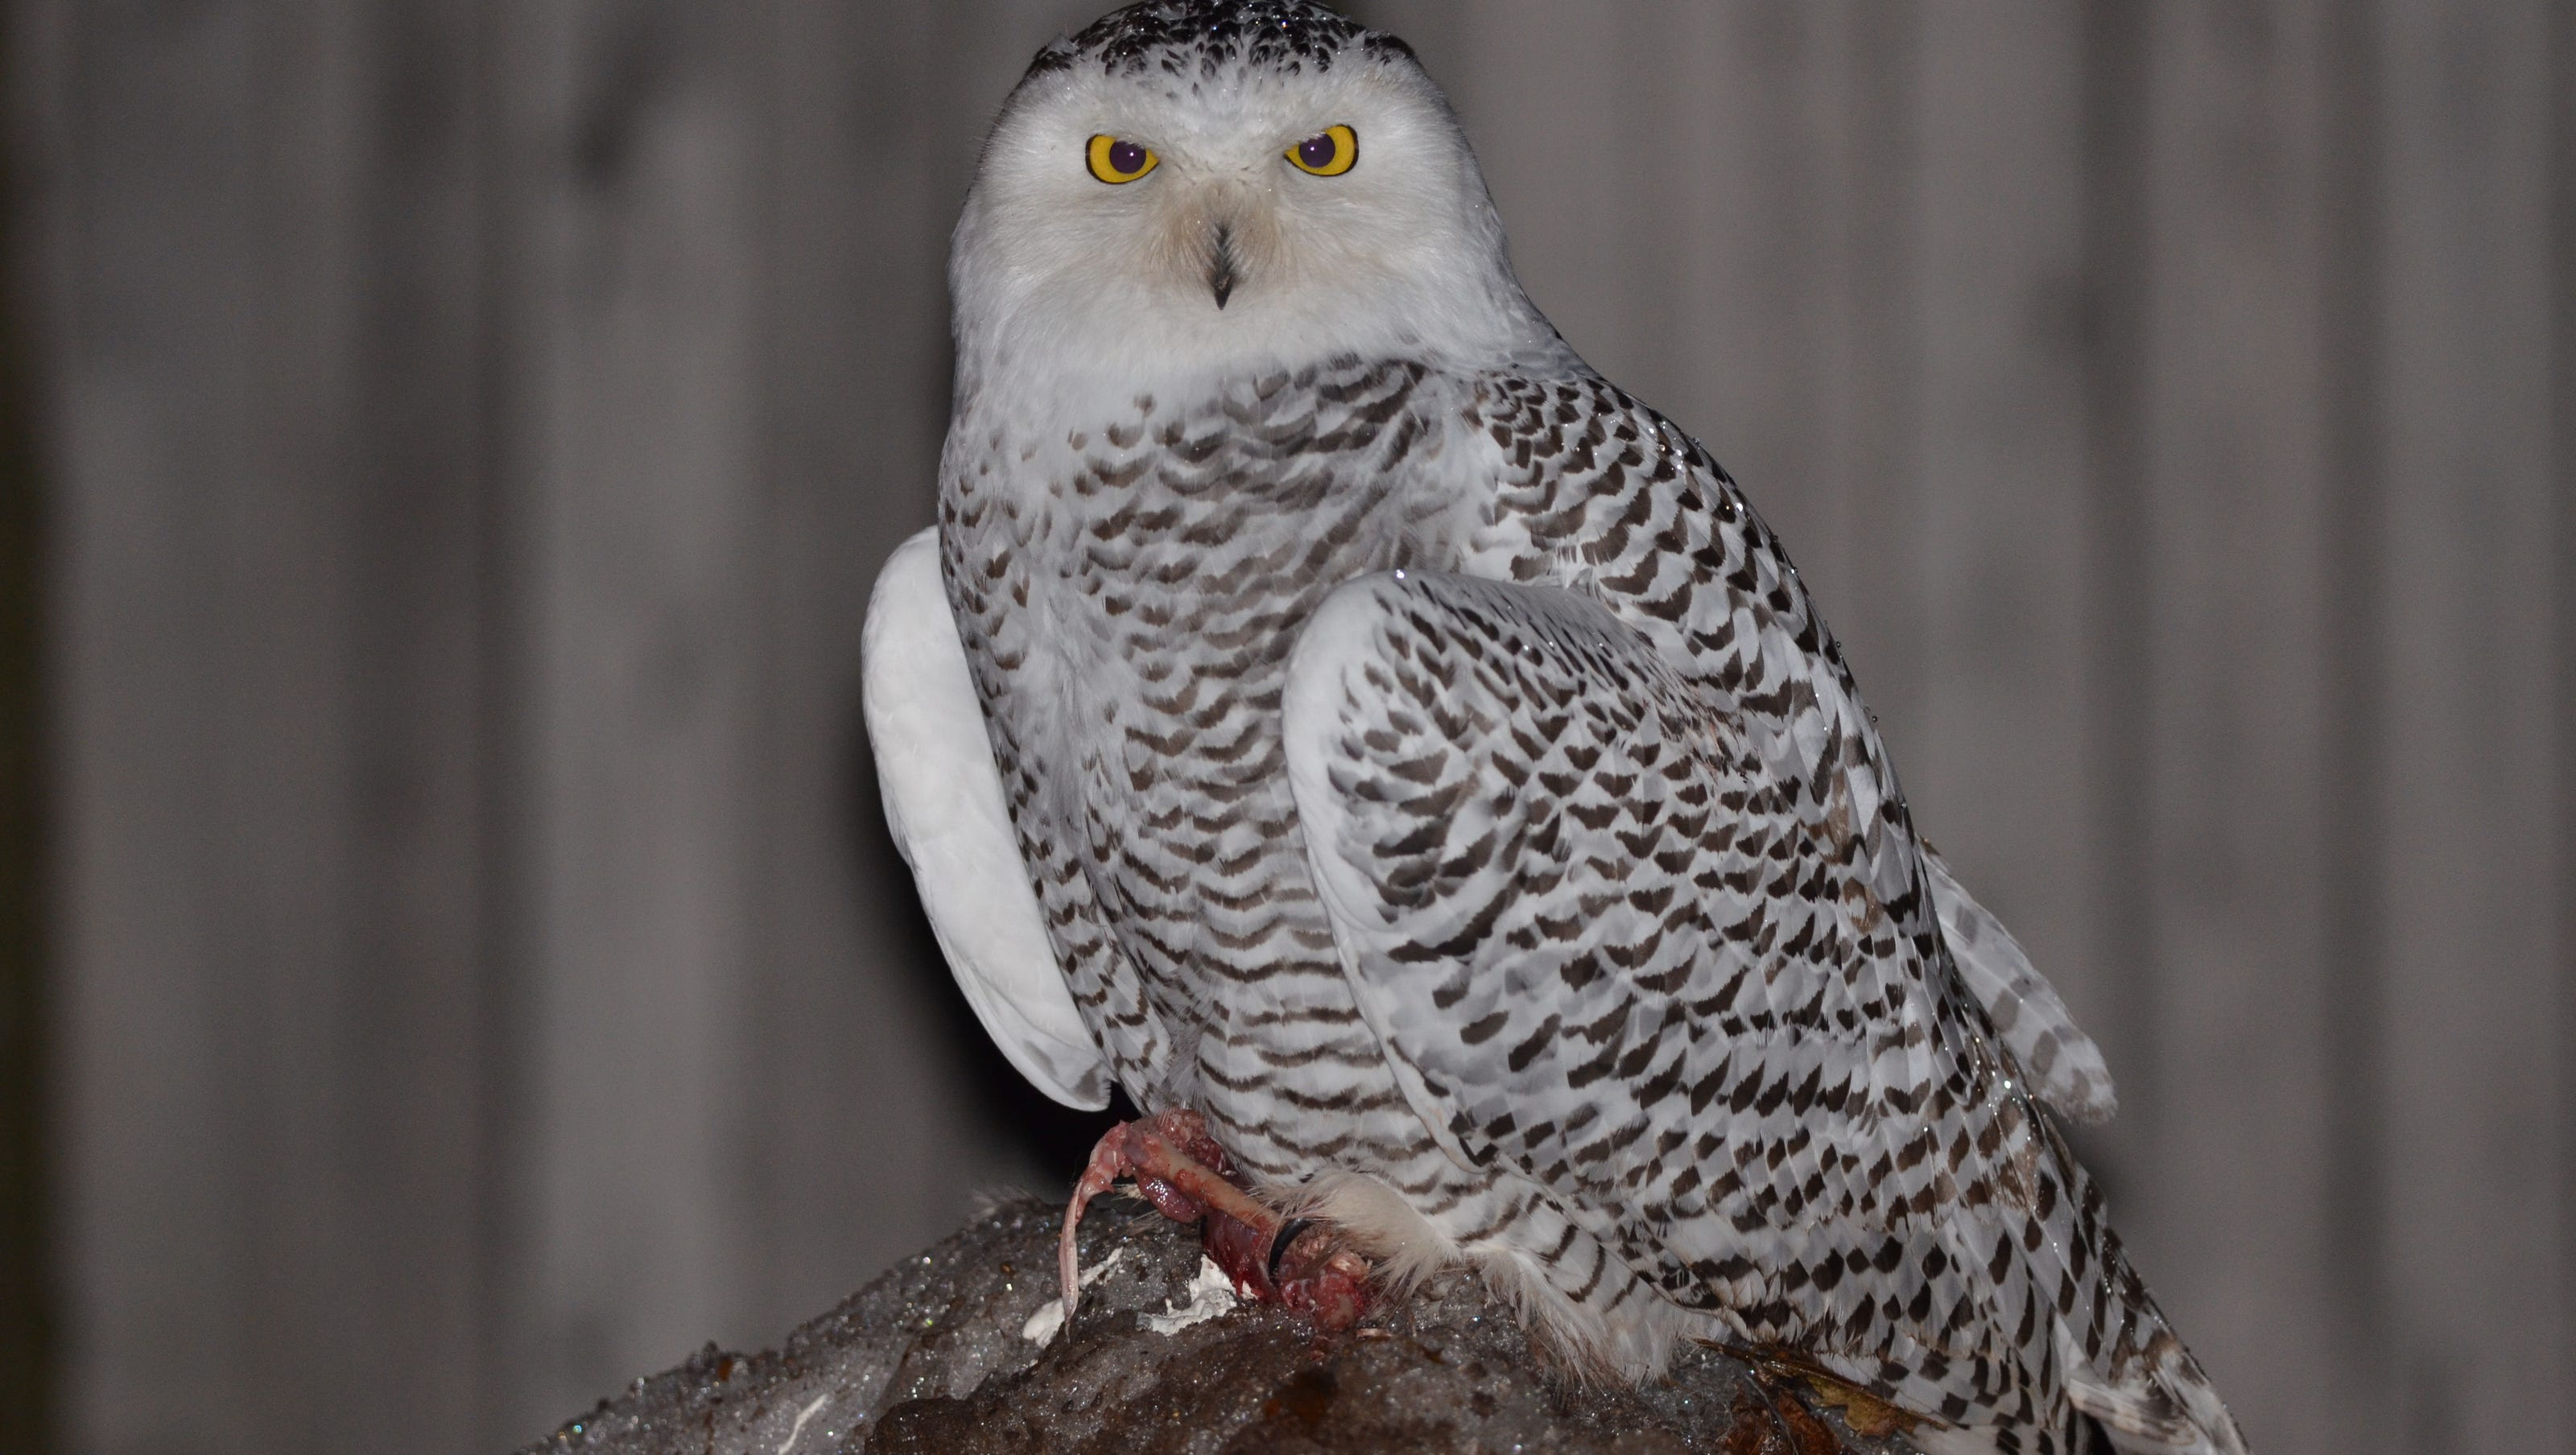 Snowy Owl Irruption Has The Birds All Over Michigan